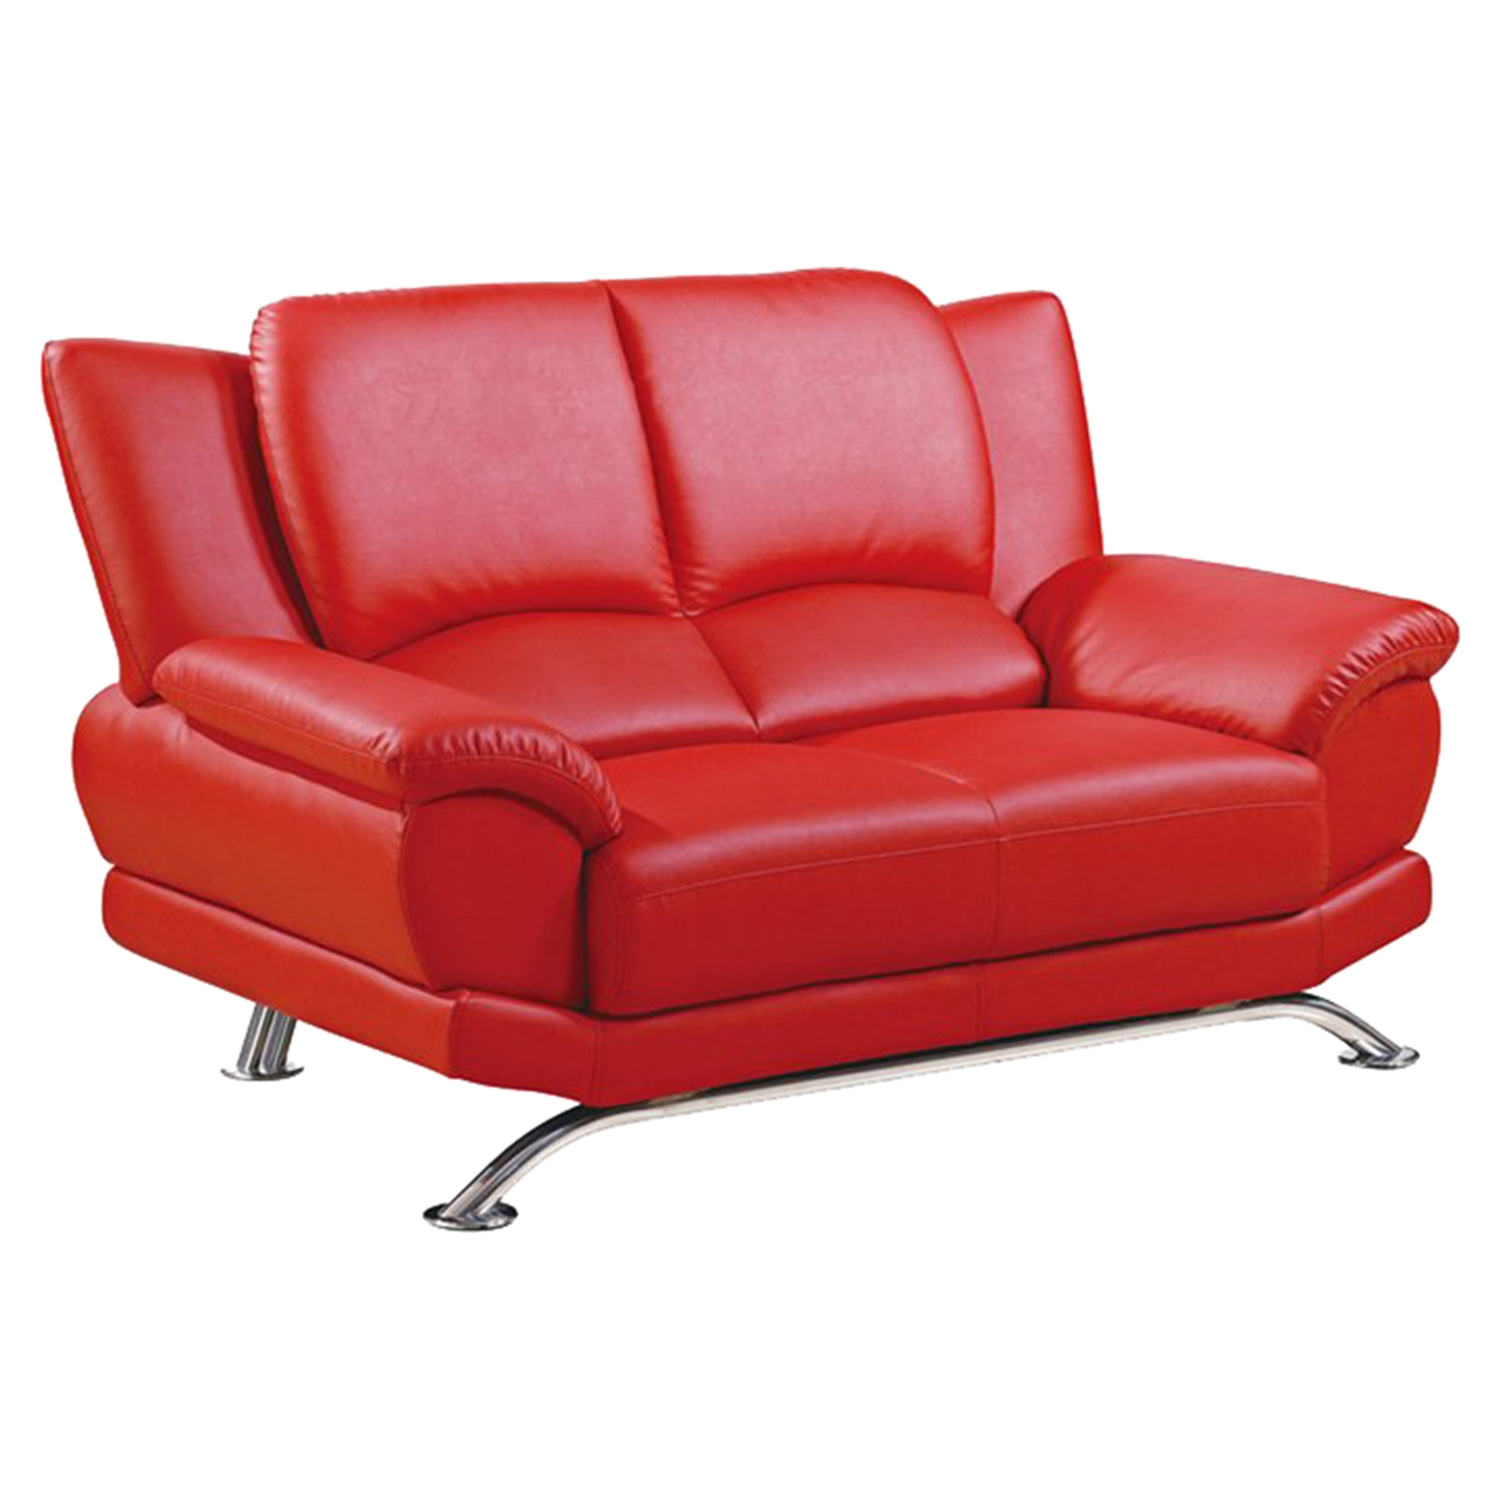 Jesus Loveseat - Red Leather - GLO-U9908-R6V-RED-L-M